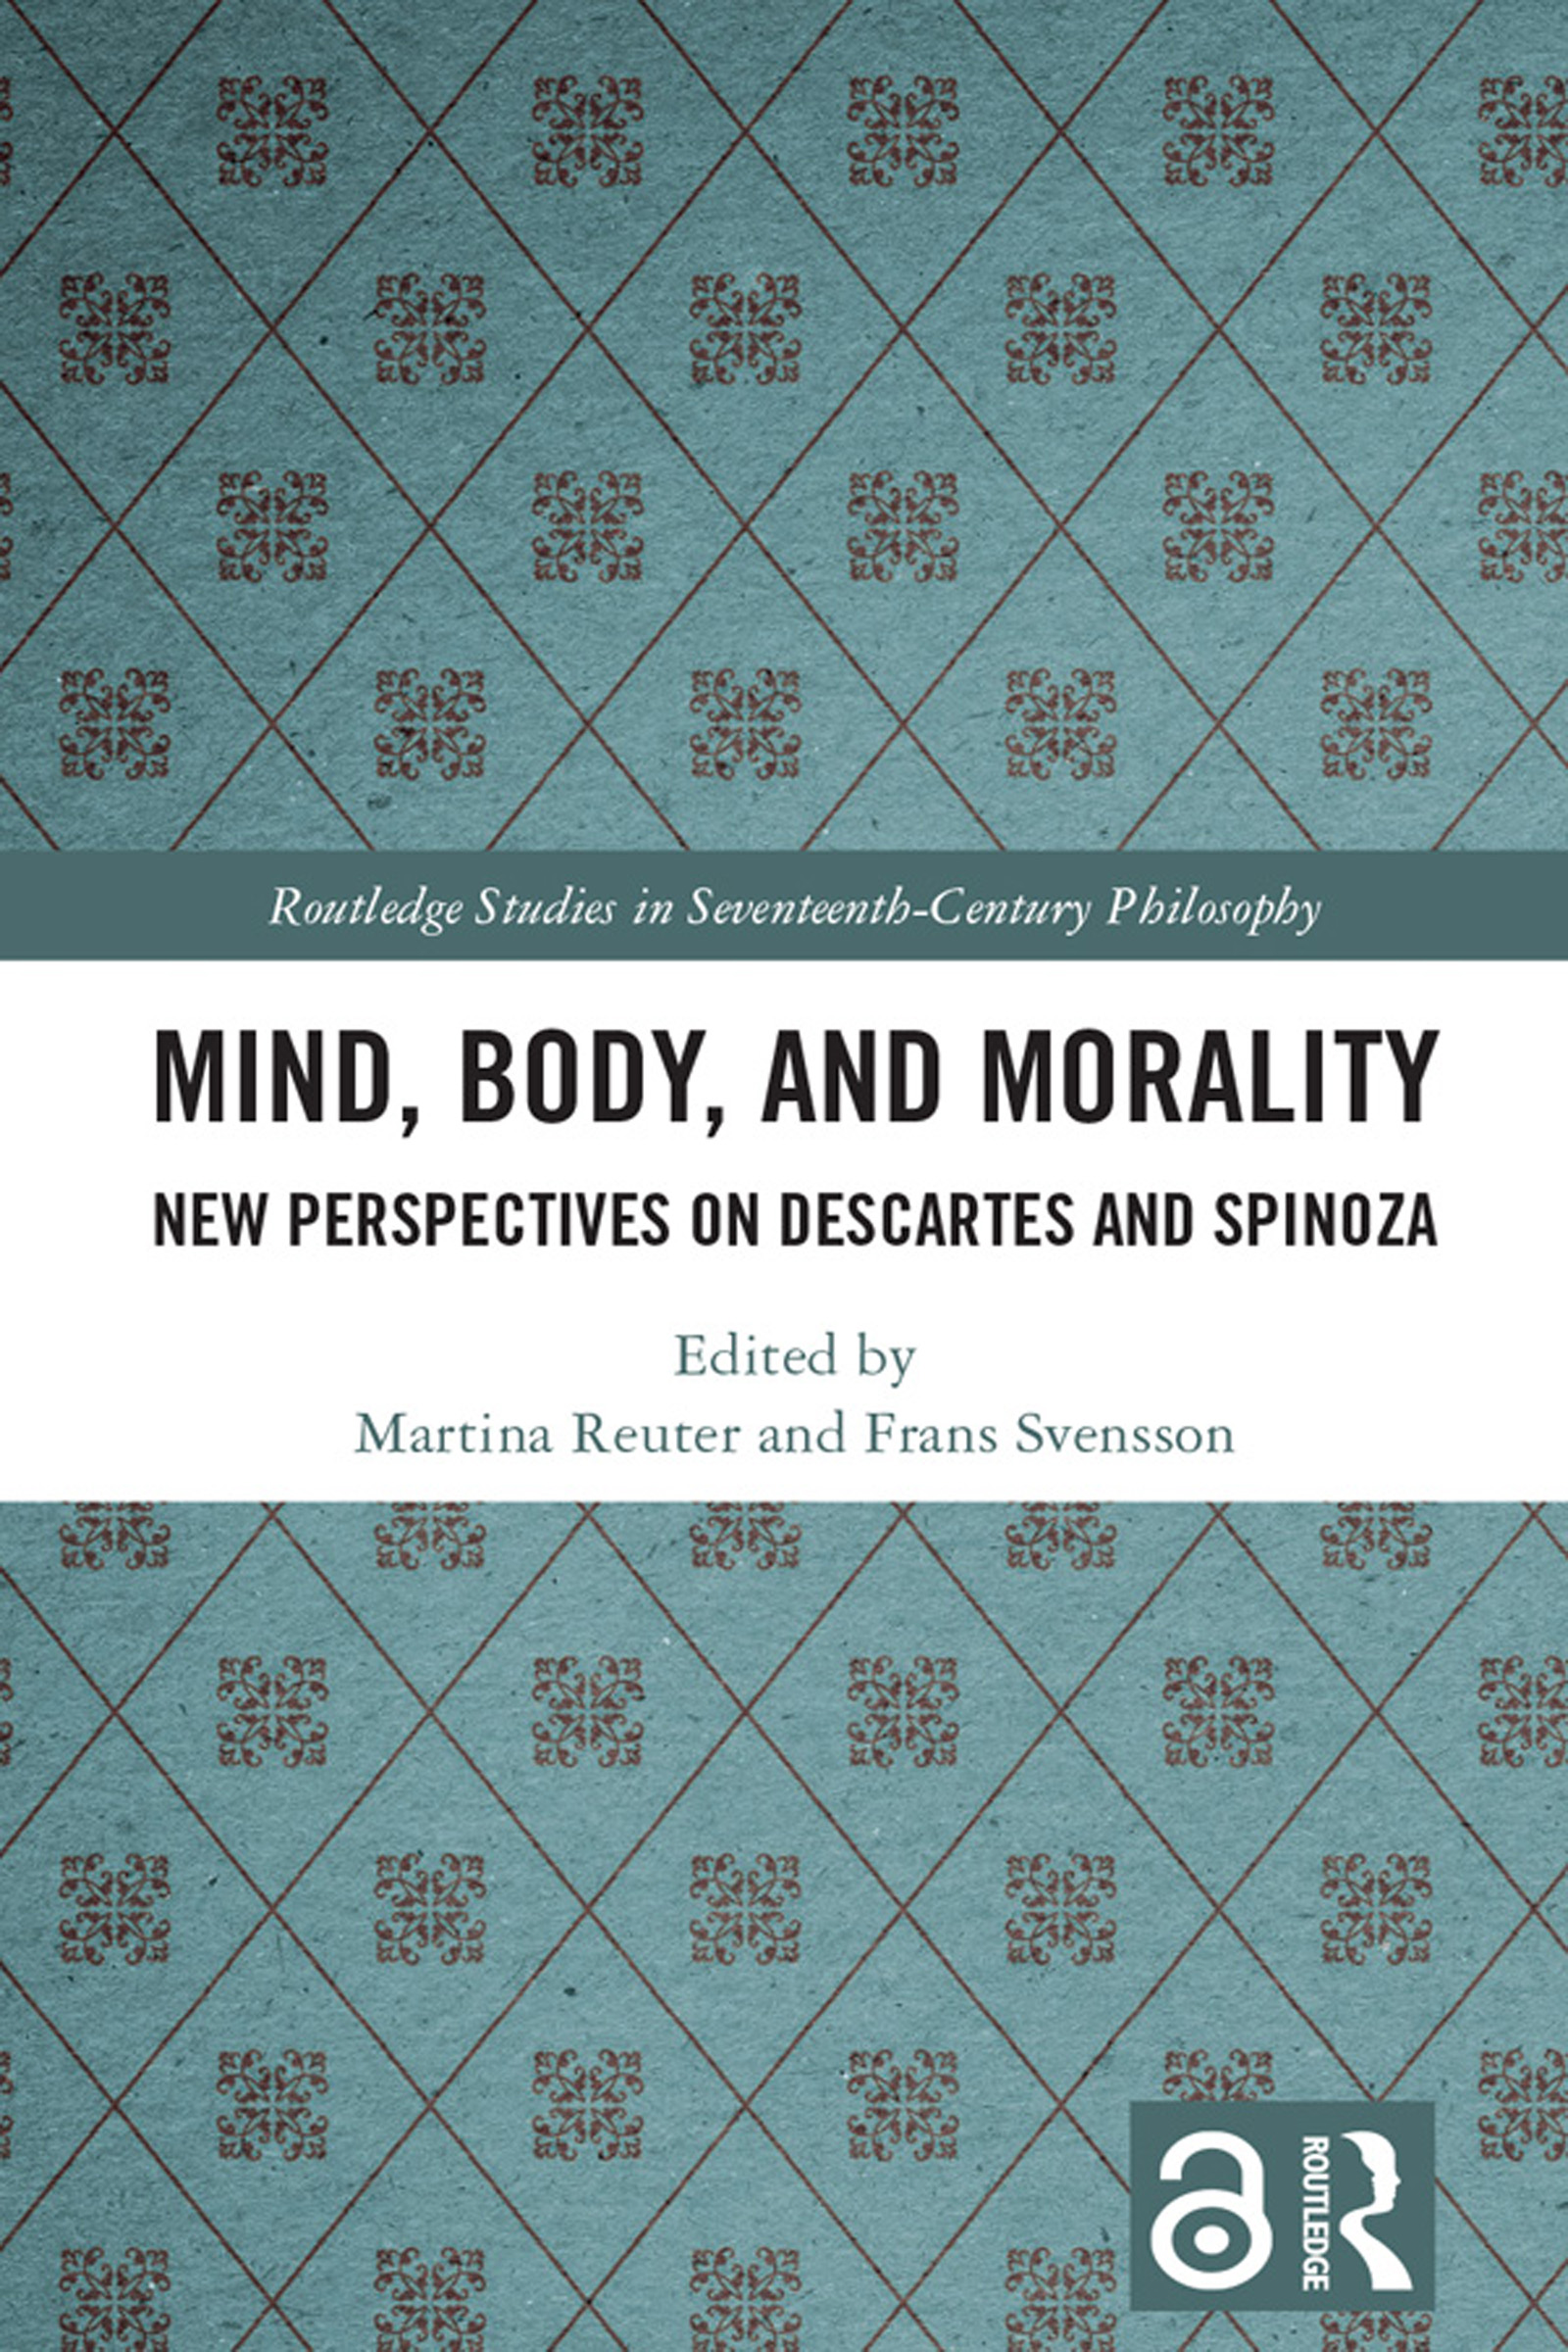 Mind, Body, and Morality